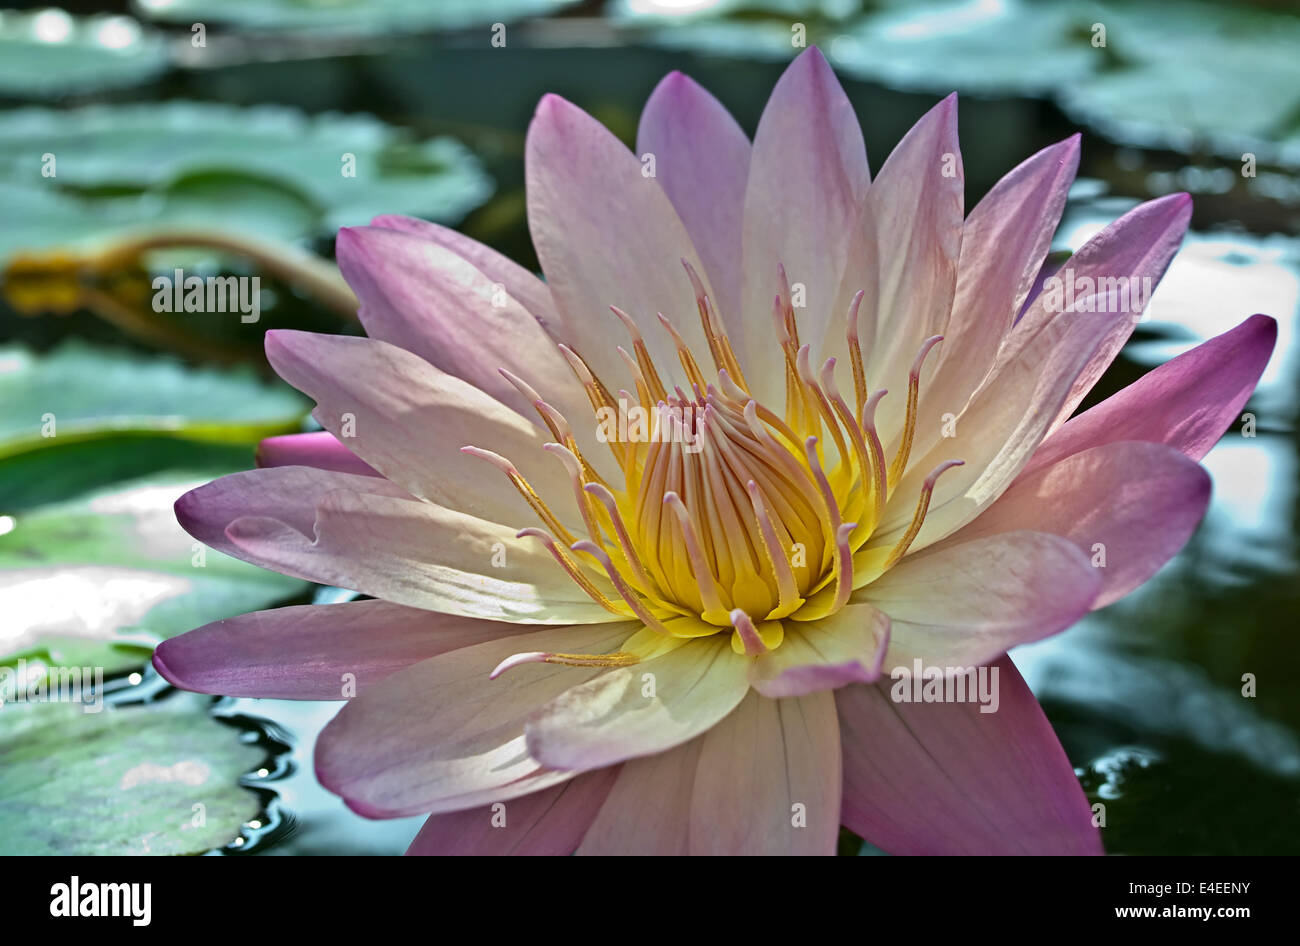 This Is A Stunning Light Purple Lotus Flower With Lily Pads Floating